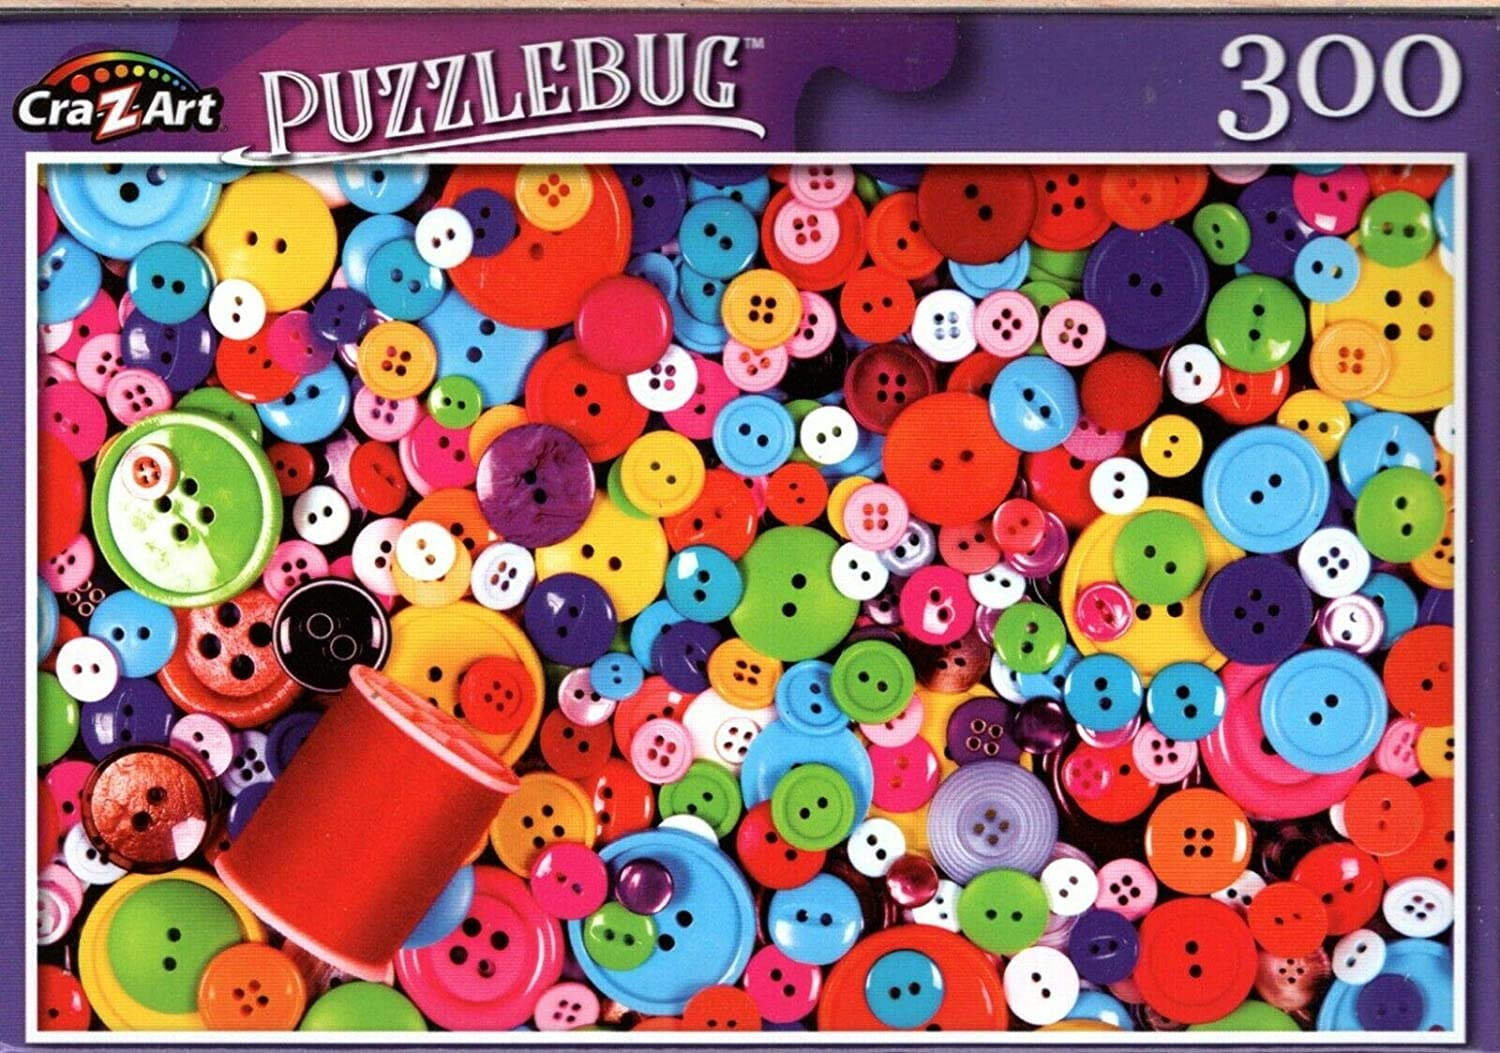 Colorful Buttons and Thread - 300 Pieces Jigsaw Puzzle